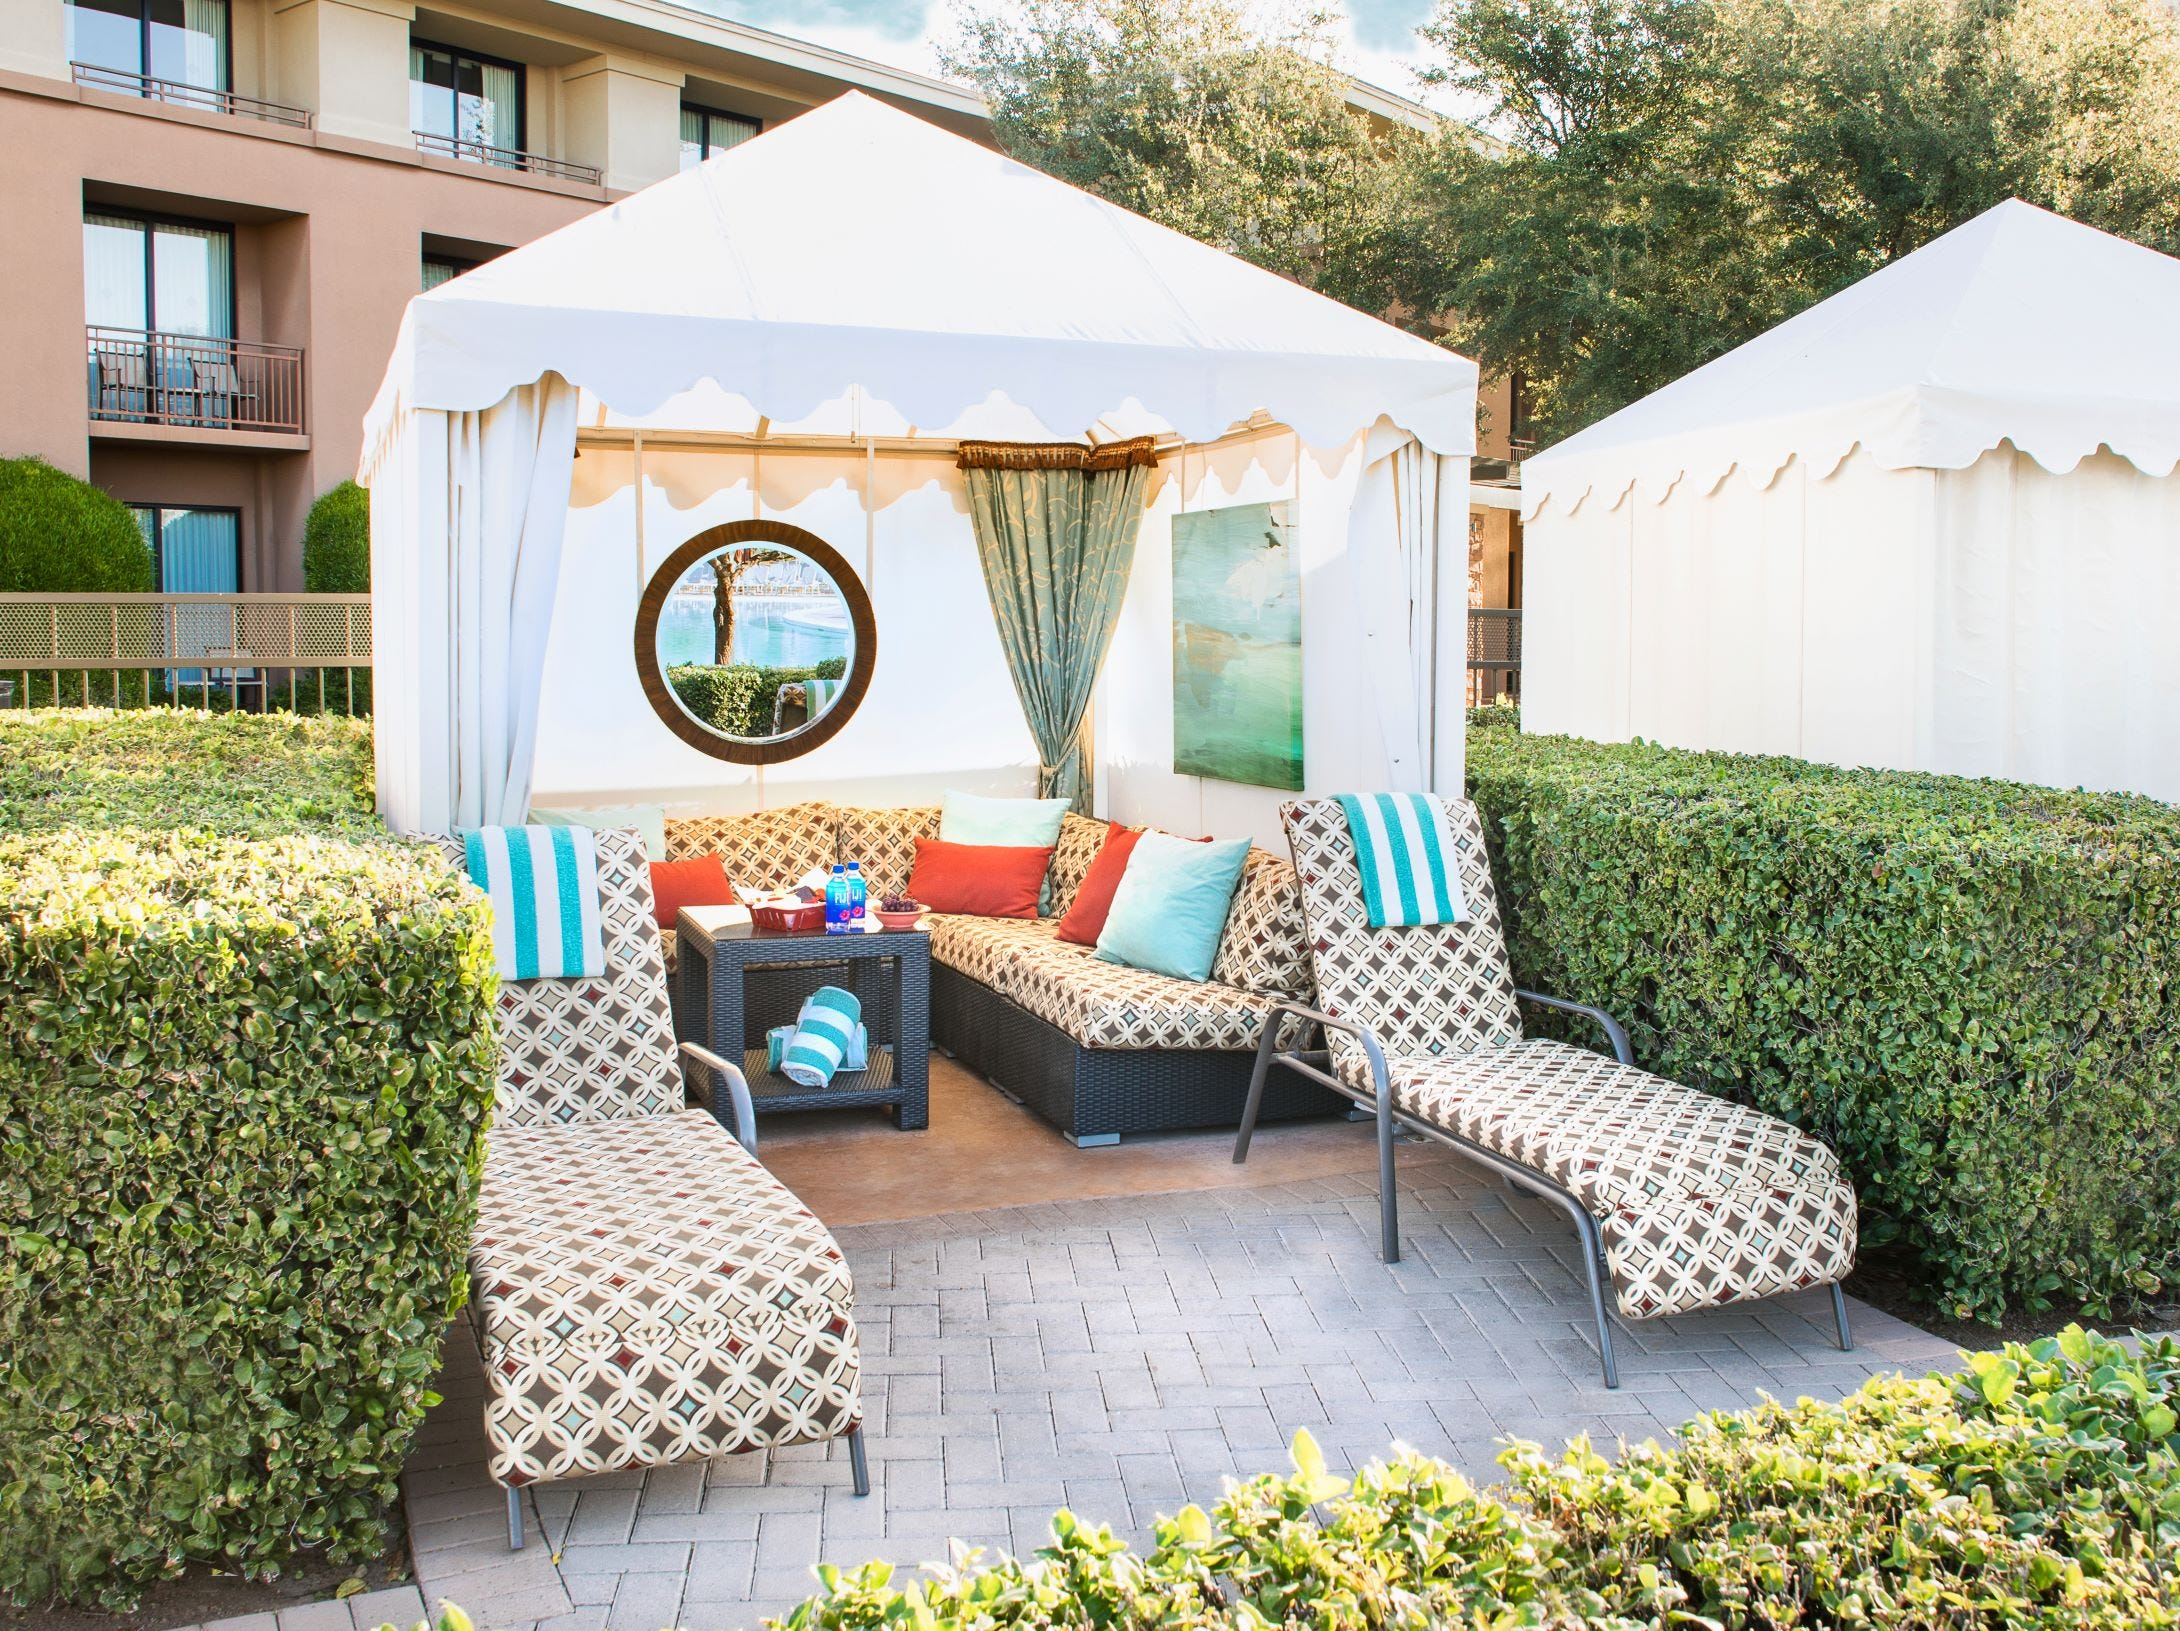 A premium poolside cabana at the Westin Kierland Resort & Spa in Phoenix,  which rents for $100 to $400 a day, includes a sofa, love seats, ceilng fan, frozen grapes, chips and salsa and Fiji water.